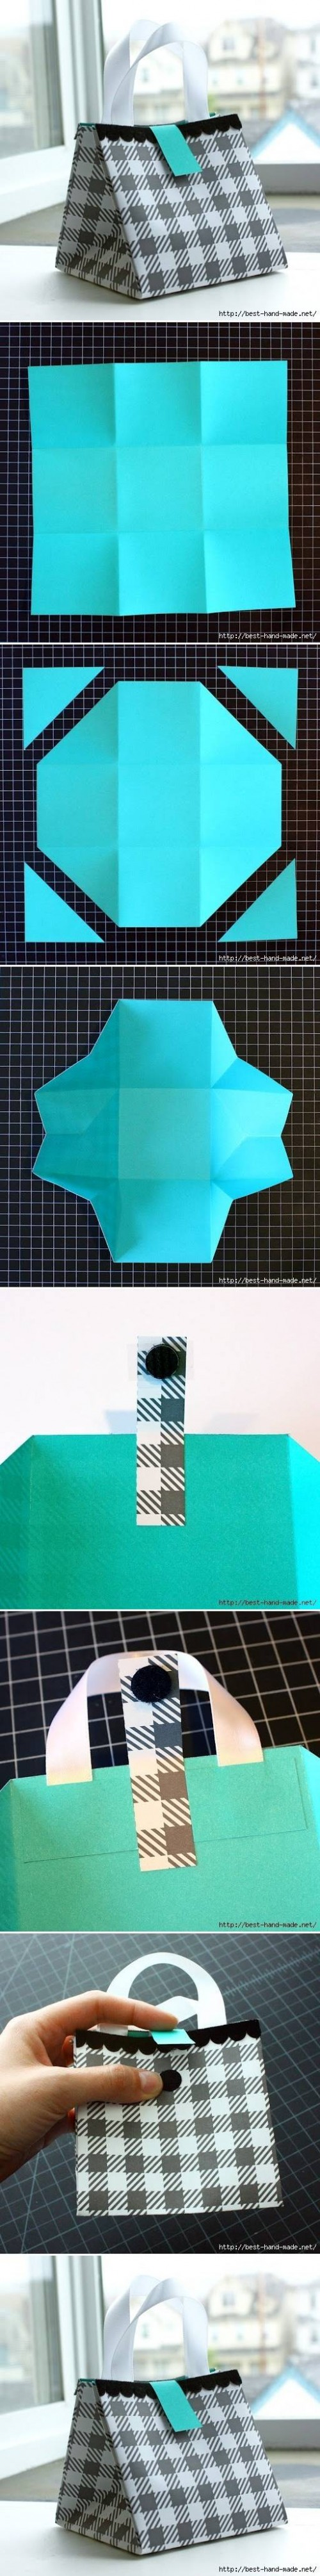 How to make Nice Paper Gift Bag step by step DIY tutorial instructions